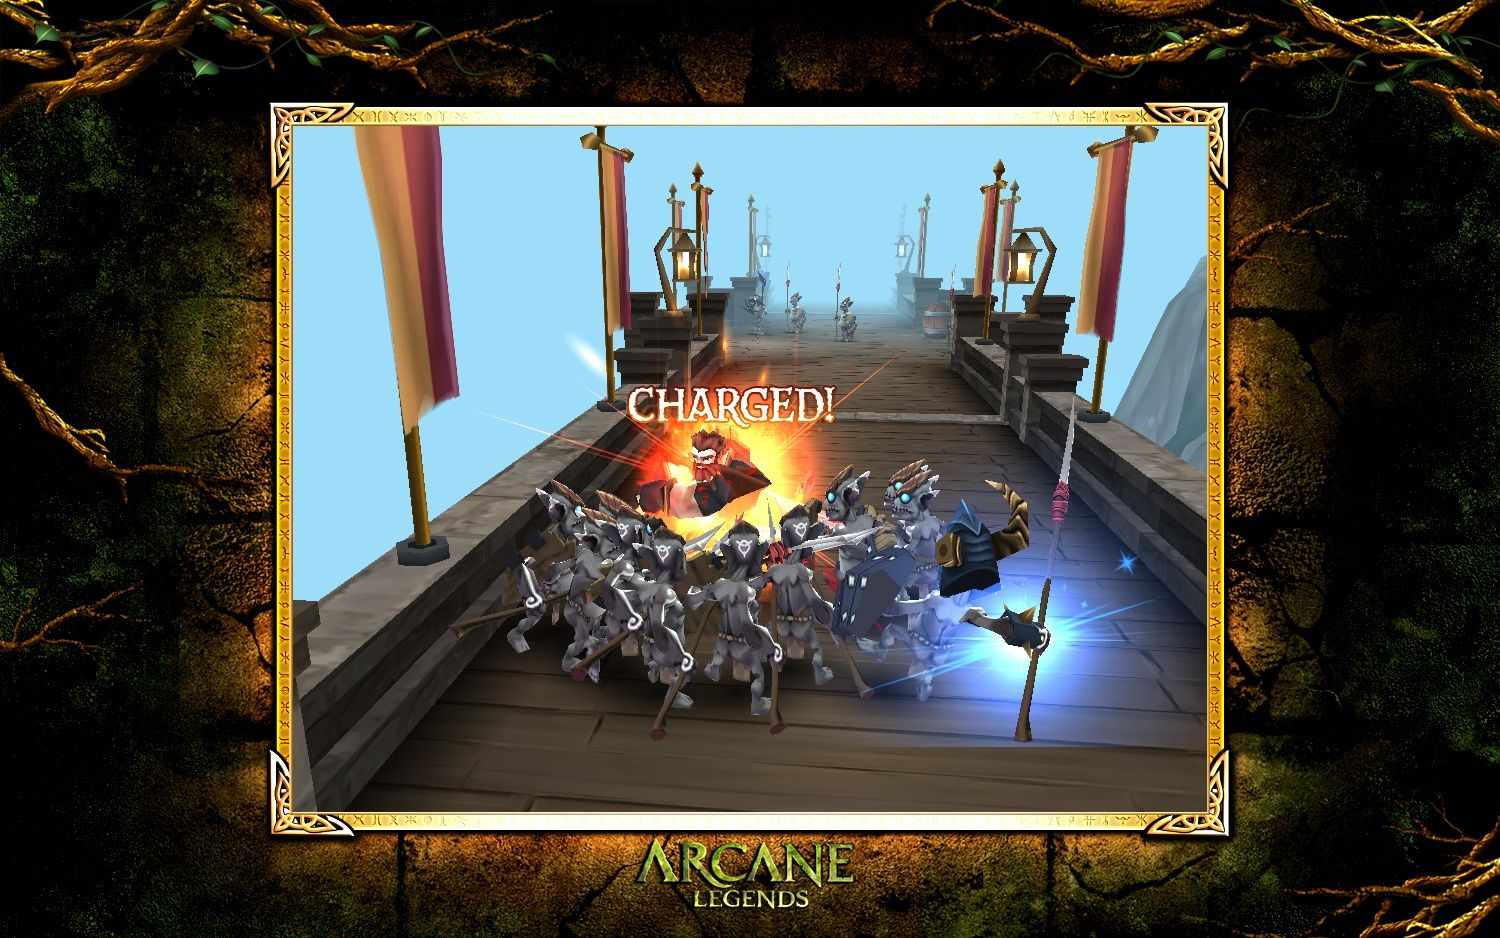 Arcane Legends is a free to play 3D Fantasy MMORPG browser game. Here you will find some Arcane Legends reviews, guides, videos, screenshots, news, walkthrough, tips and more.